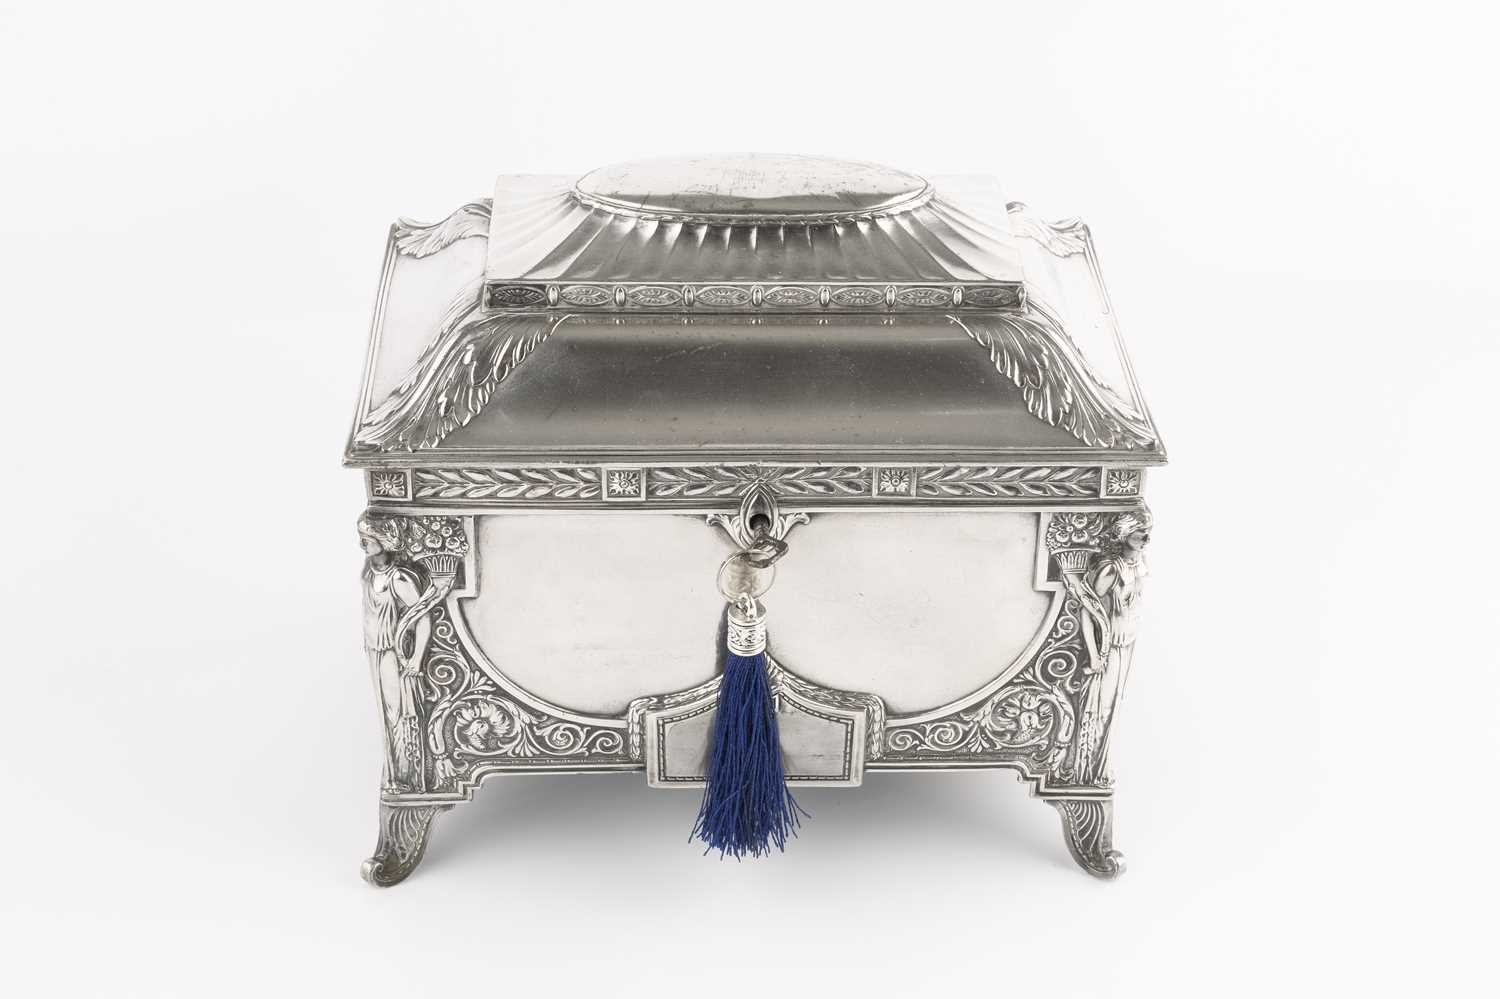 An early 20th century W.M.F. silver plated rectangular casket, of Art Nouveau design, the domed